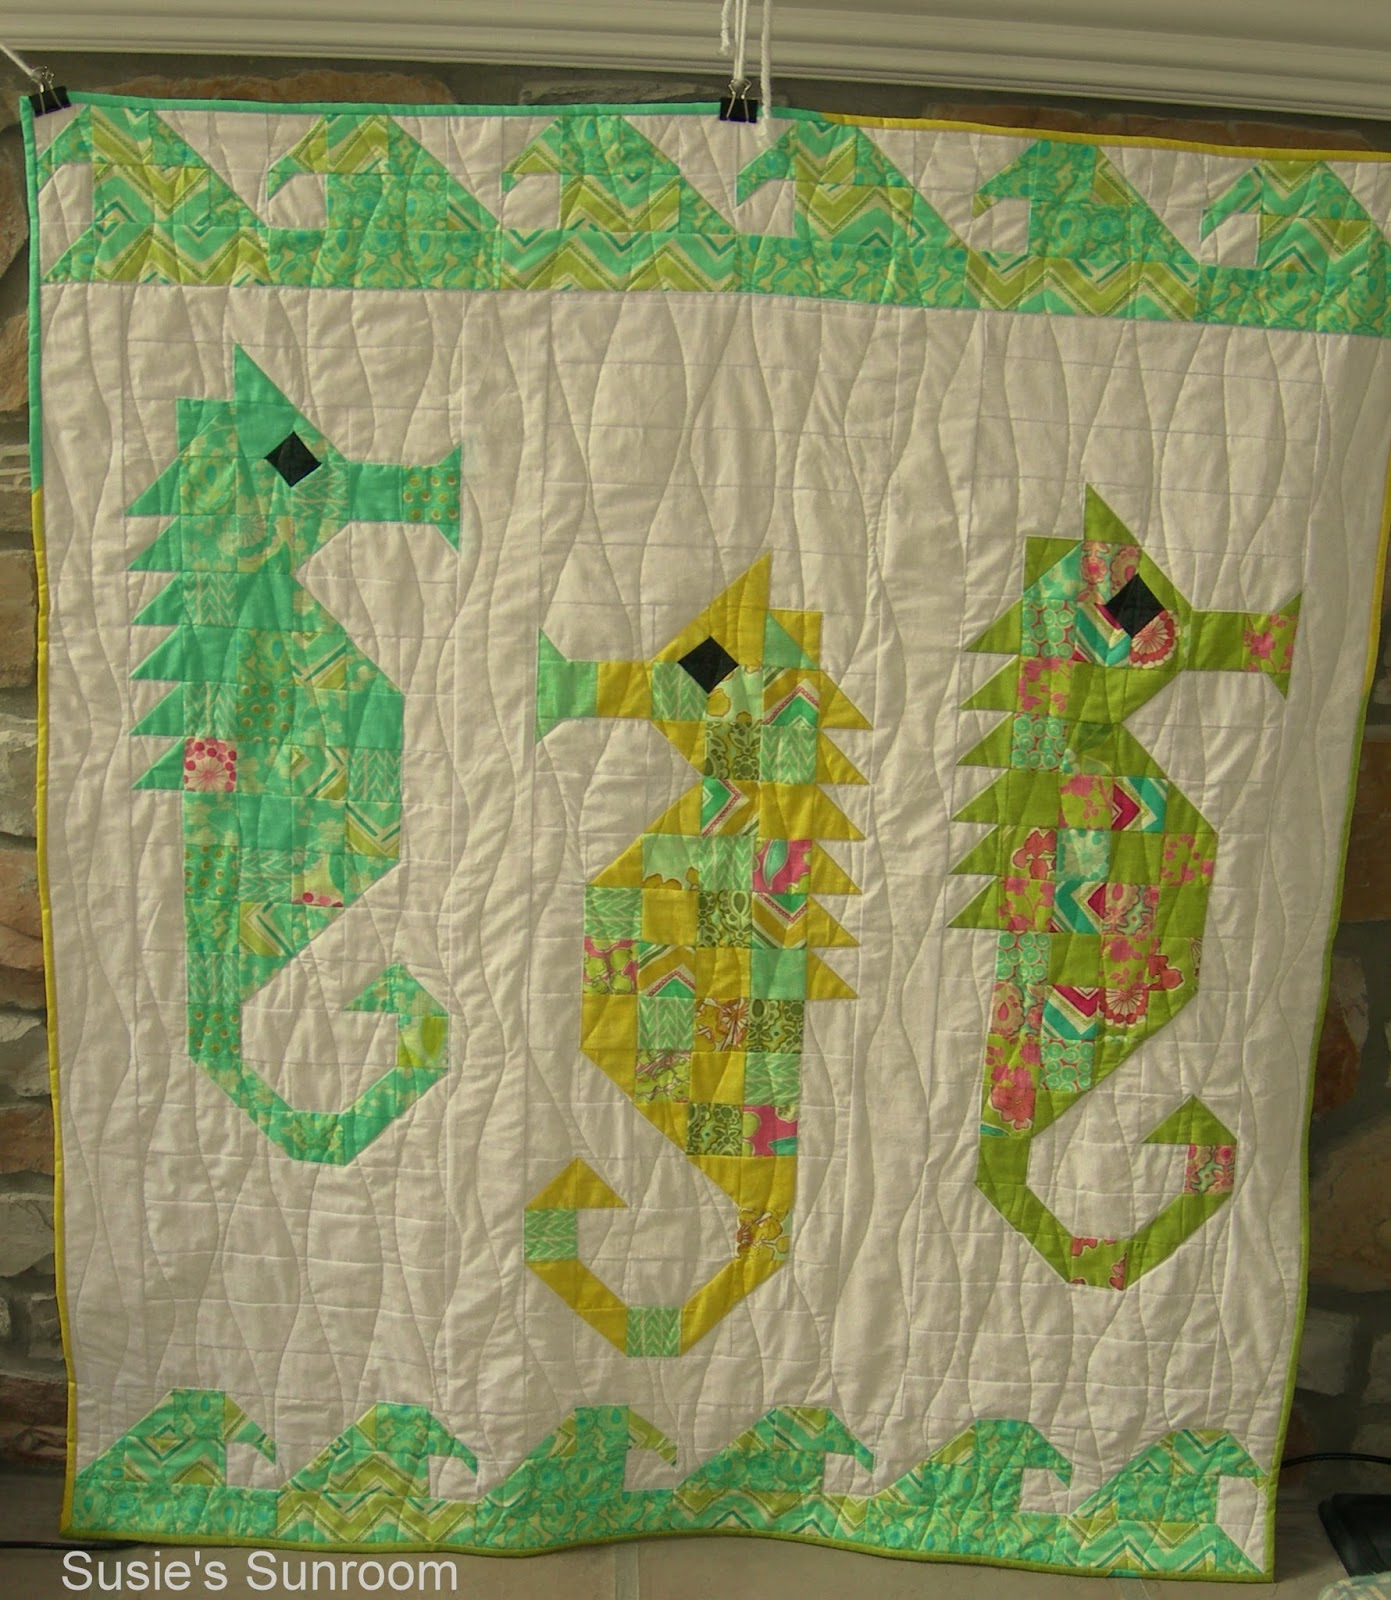 Susies Sunroom Watercolor Sea Horses